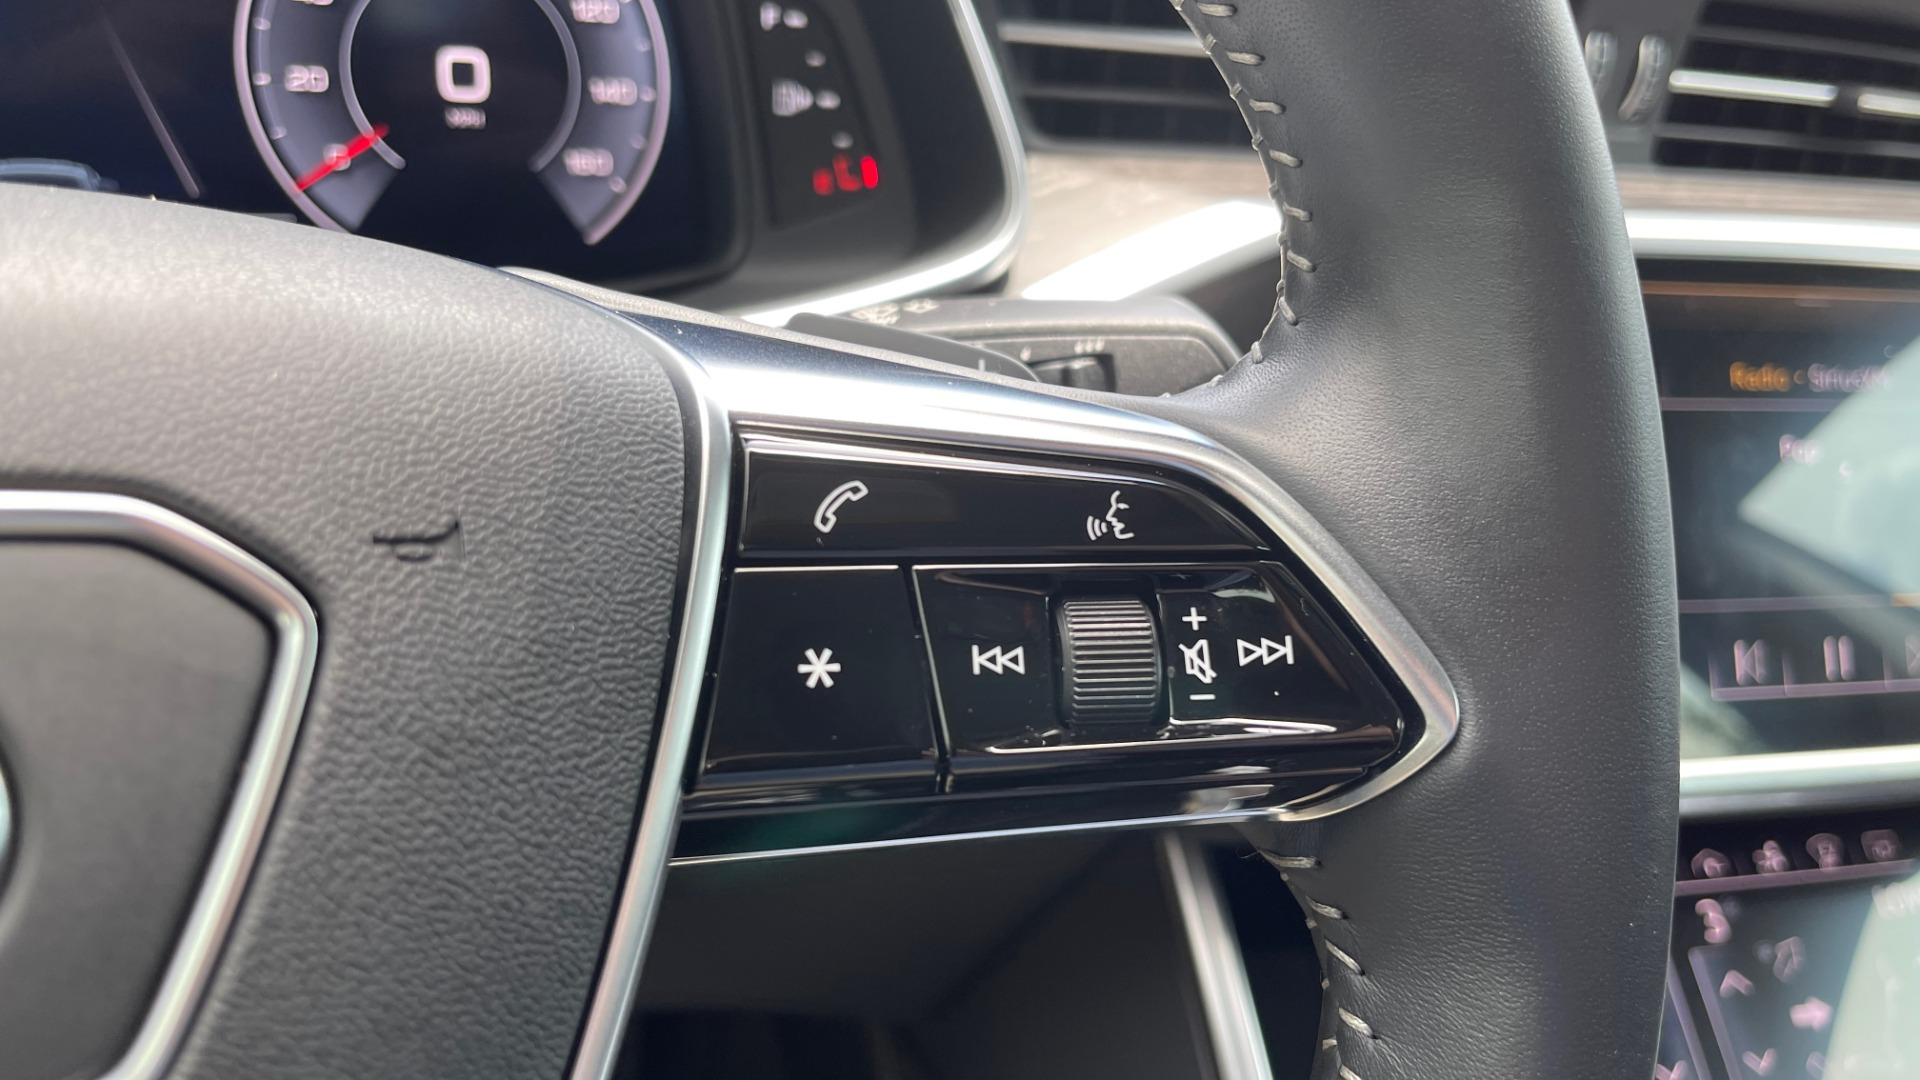 Used 2019 Audi A7 PRESTIGE 55 TFSI 3.0T / NAV / B&O SND / SUNROOF / S-LINE / 21IN WHLS / REAR for sale $66,995 at Formula Imports in Charlotte NC 28227 42